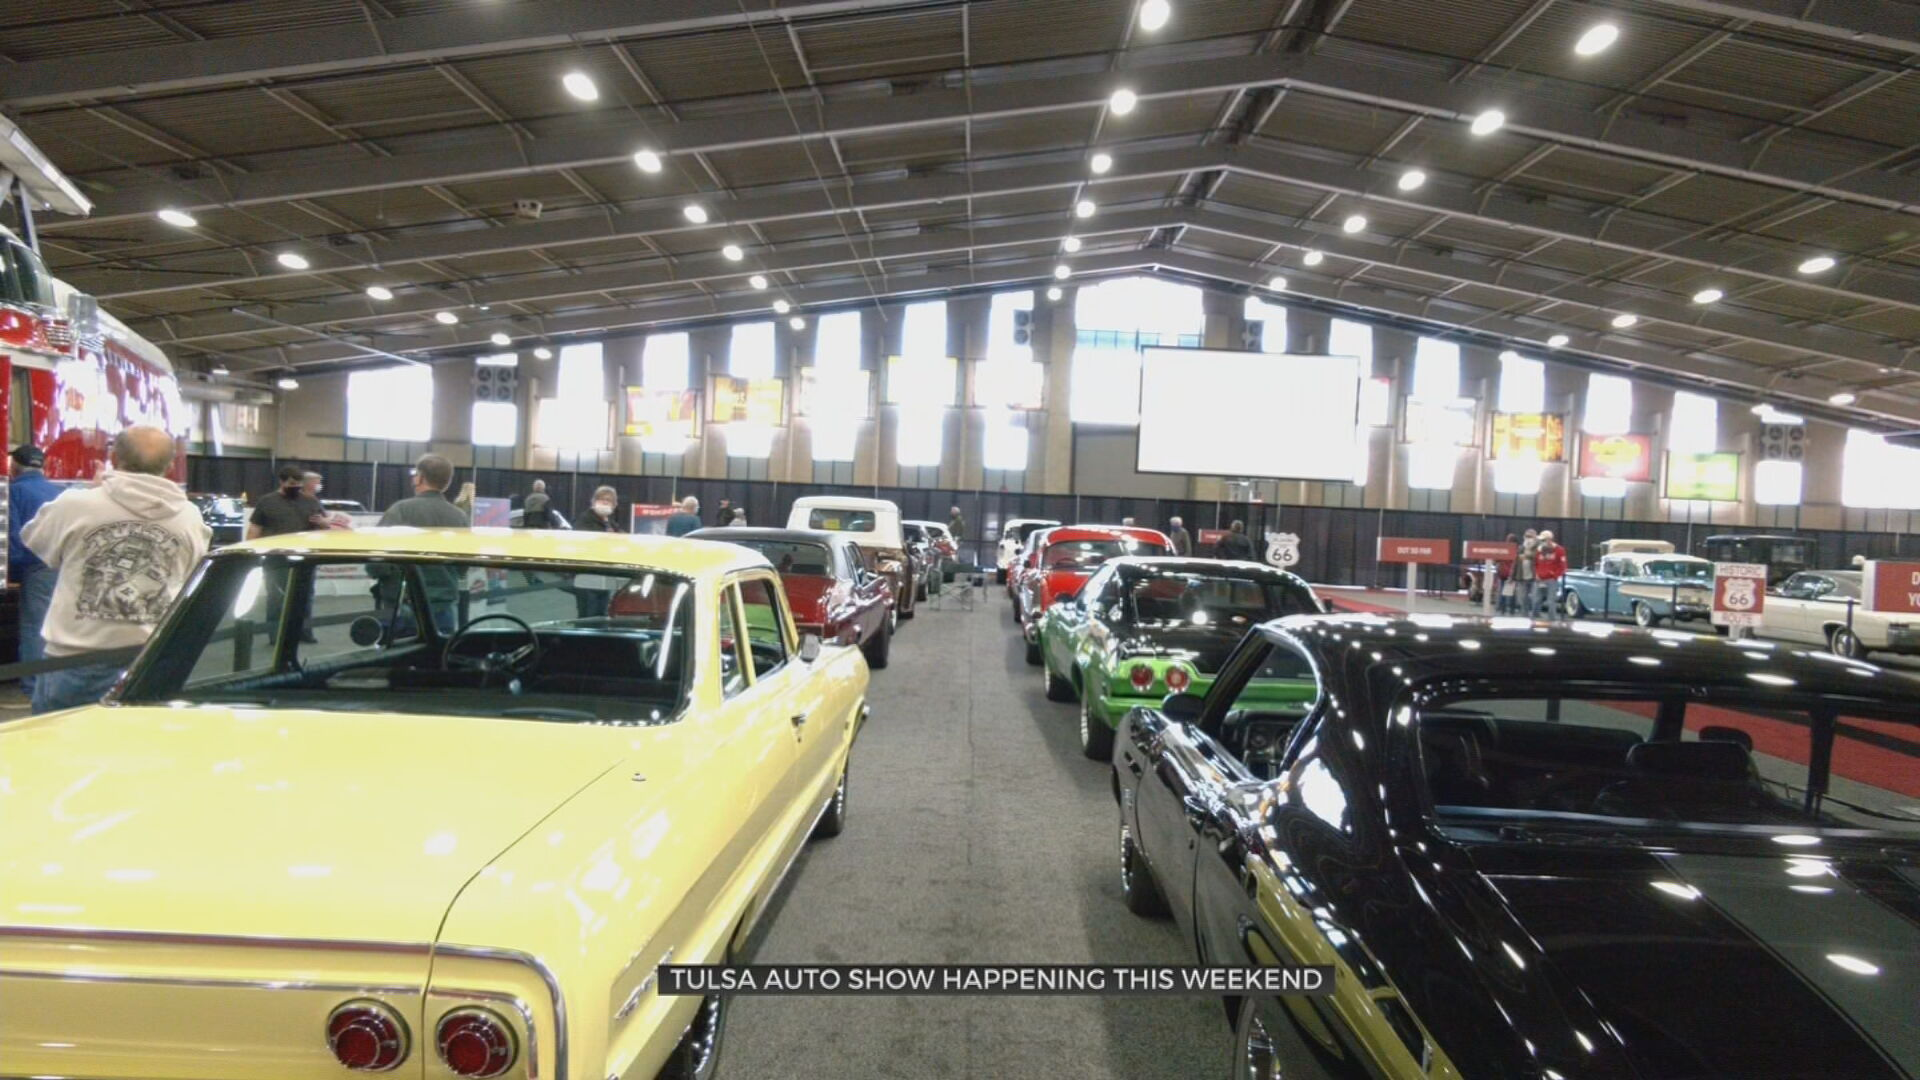 Tulsa Auto Show Returns With Classic & Brand-New Cars On DisplayNews 9